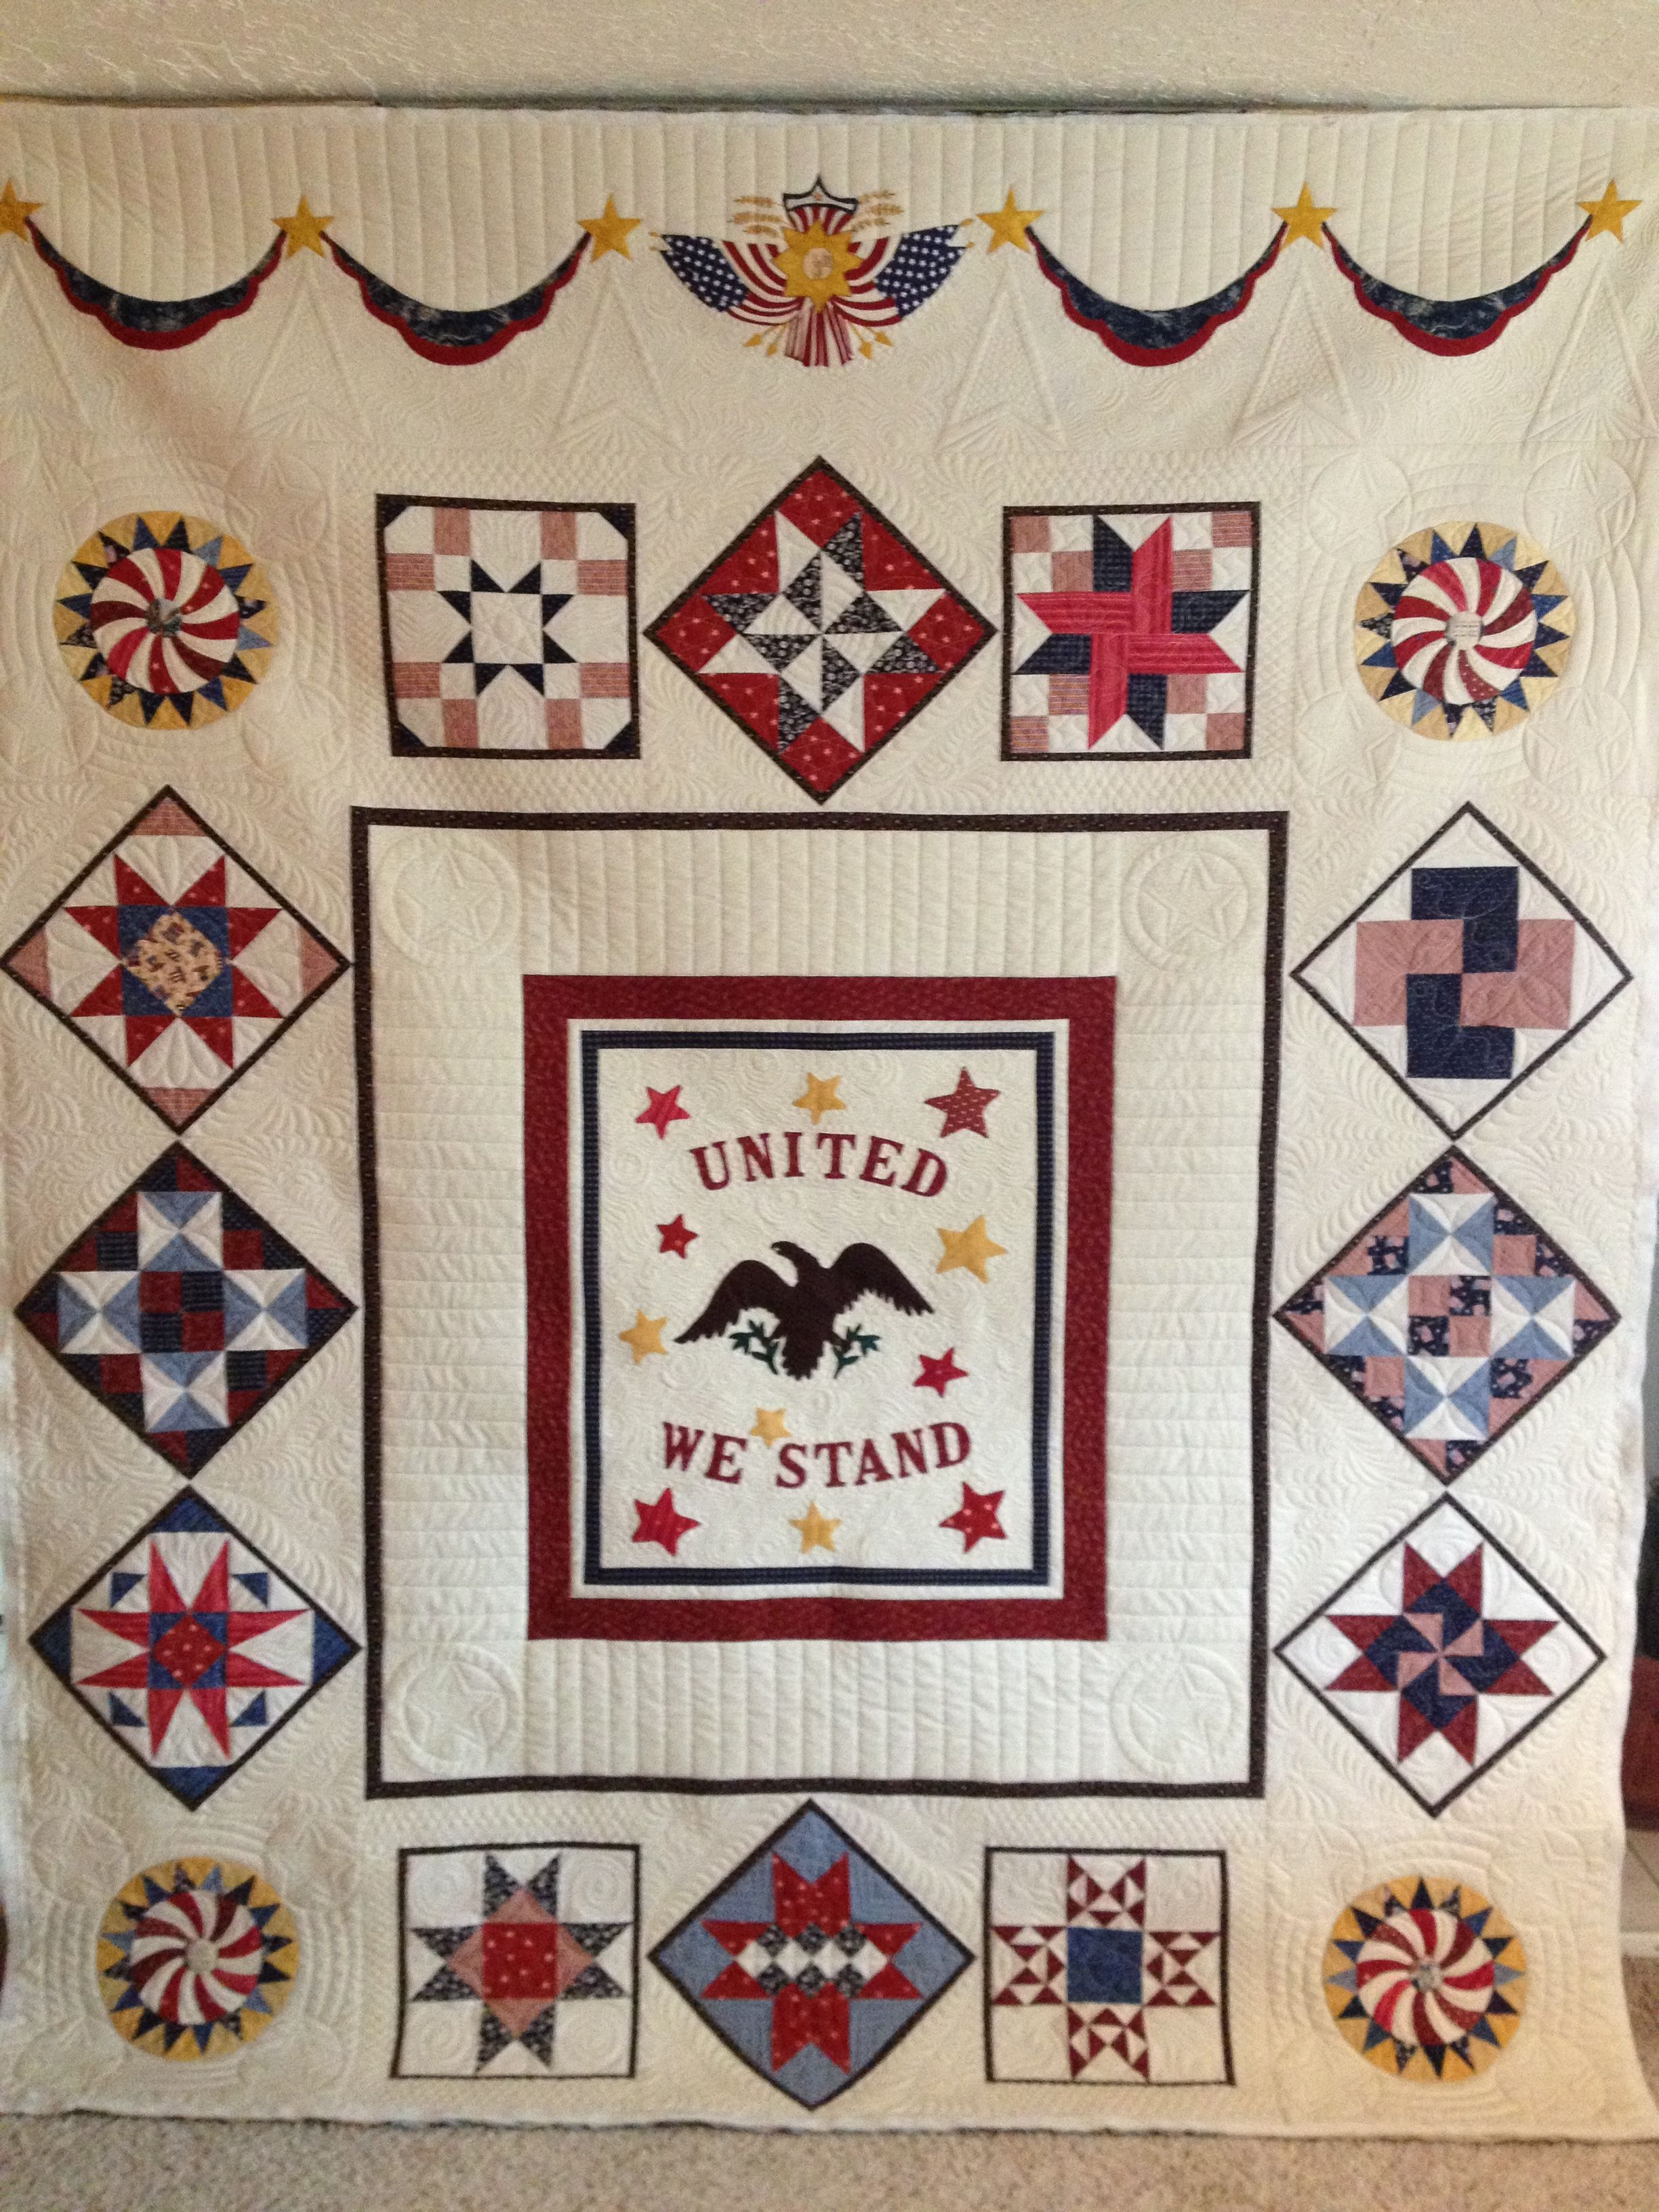 Jenny's beautiful quilt - to be entered in the American Heritage ... : quilting contests - Adamdwight.com